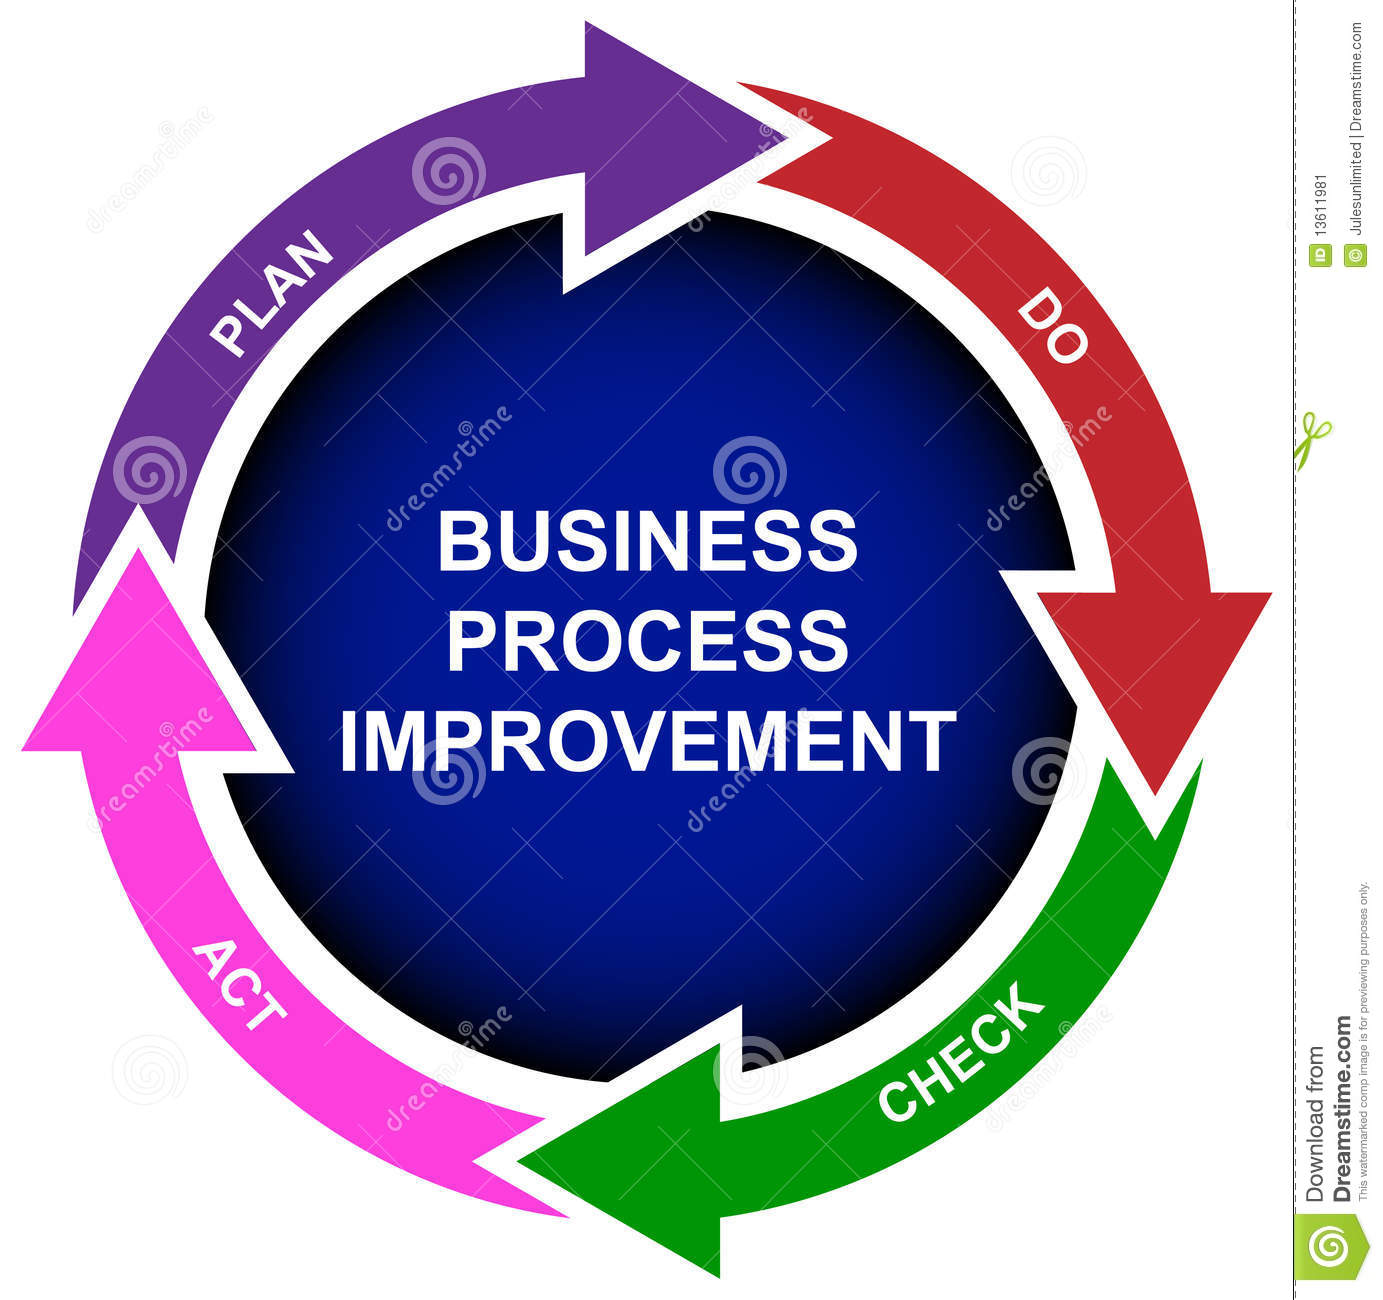 business process improvement diagram stock image   image    business process improvement diagram